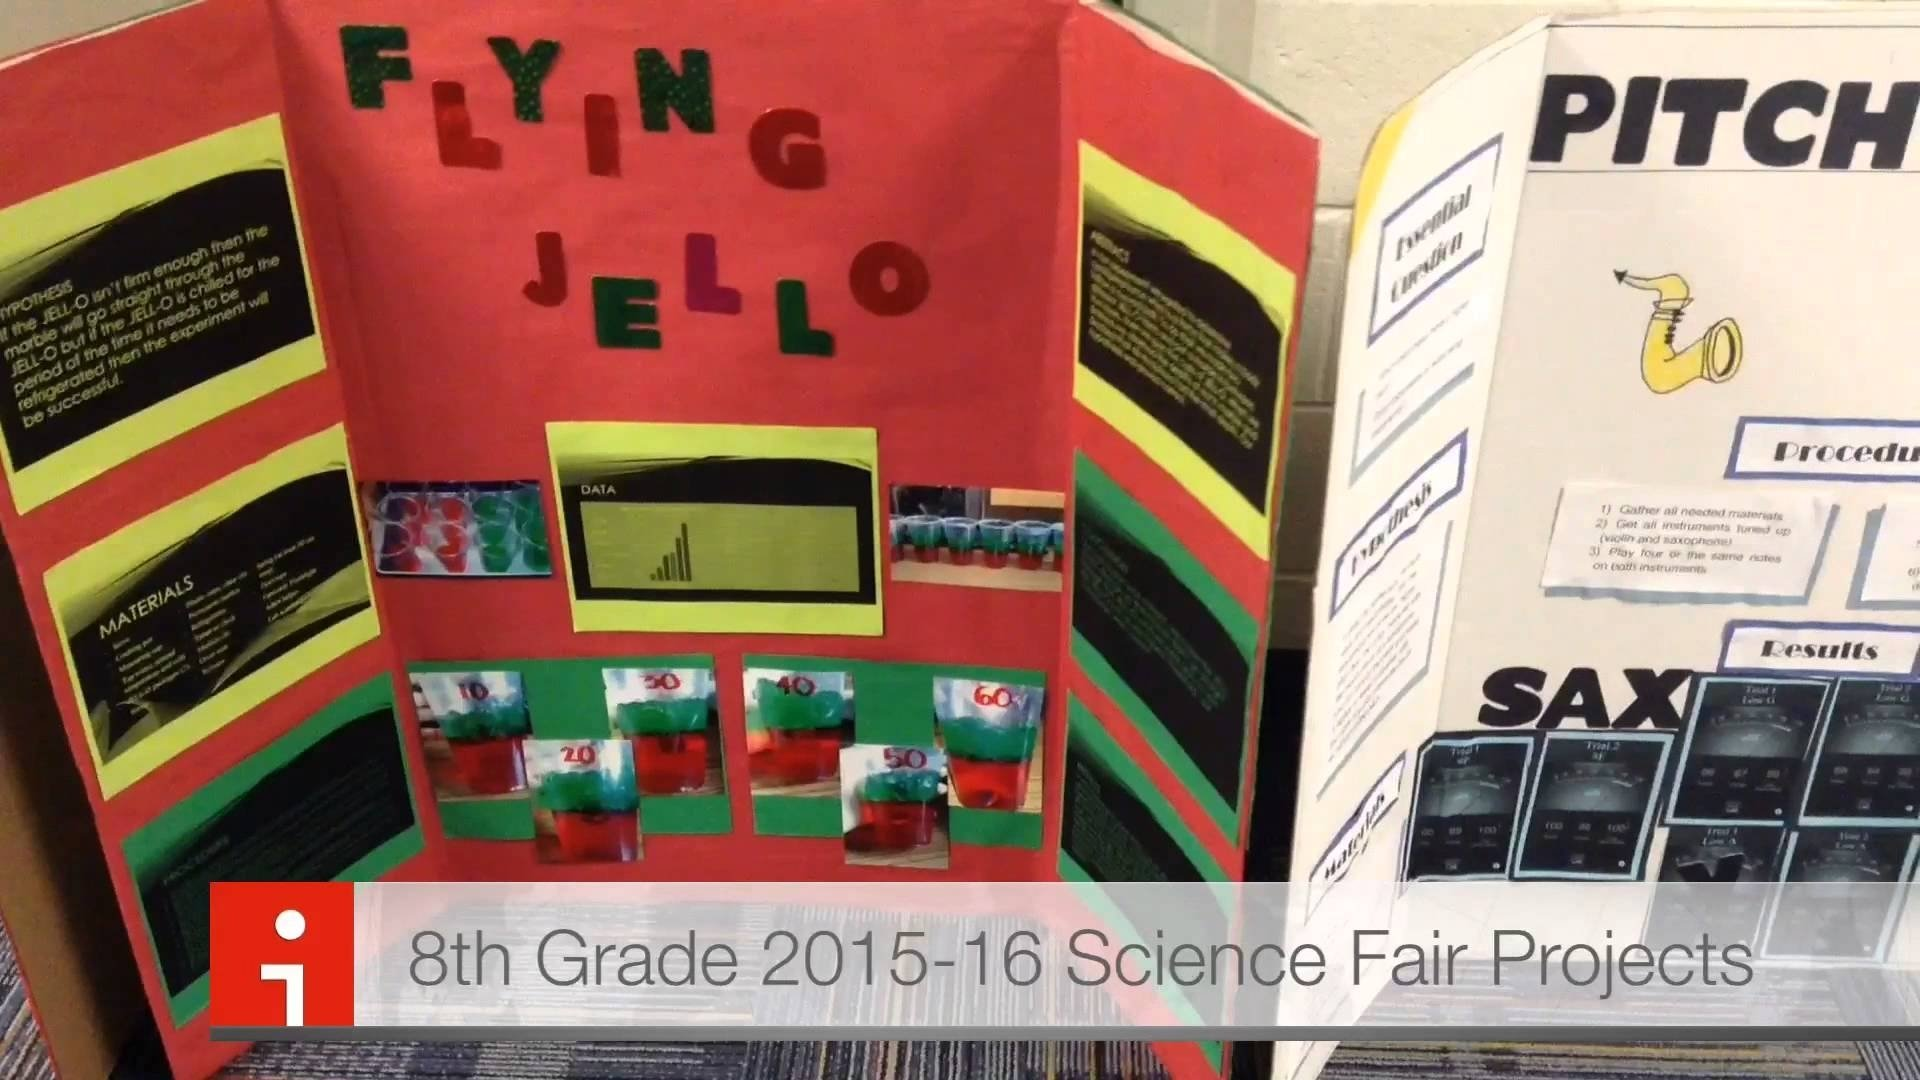 10 Stylish Middle School Science Fair Projects Ideas 8Th Grade 2015 16 8th grade science fair projects youtube 7 2021